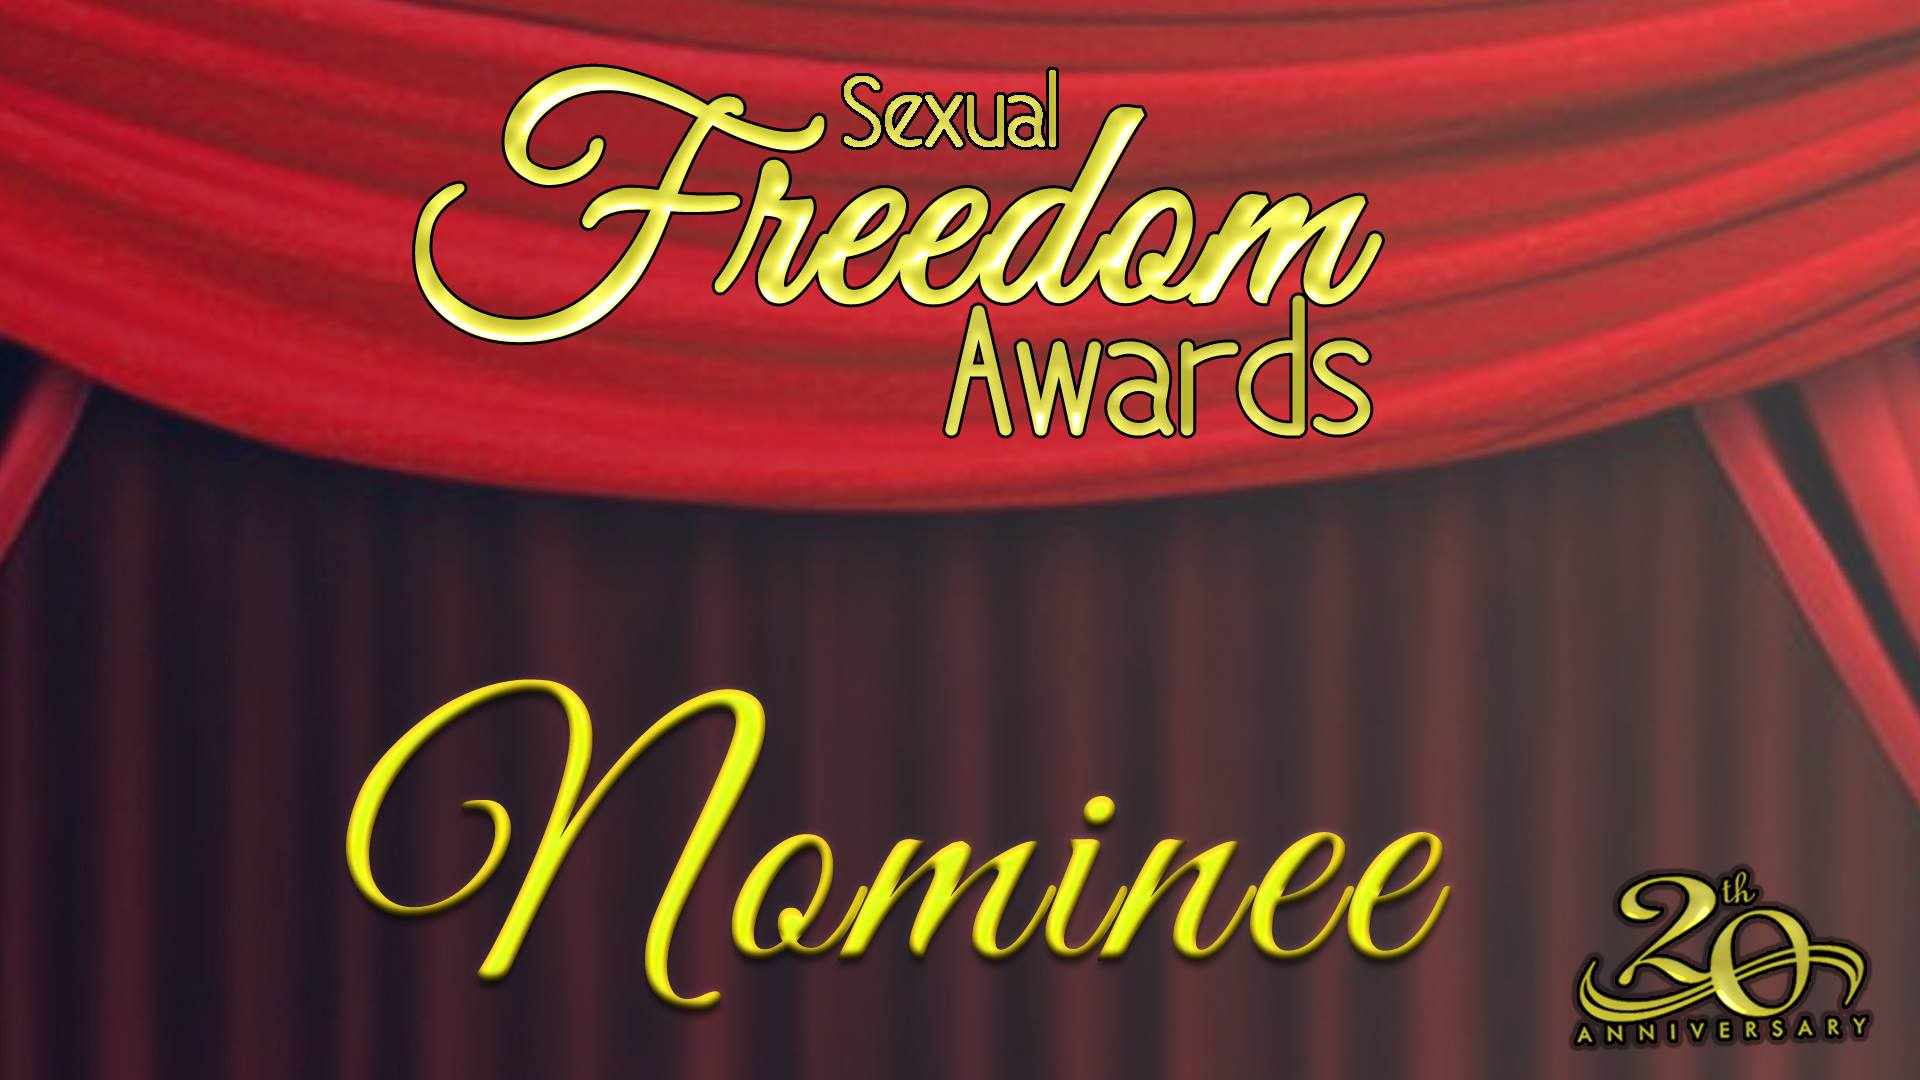 Sexual Freedom Awards Logo